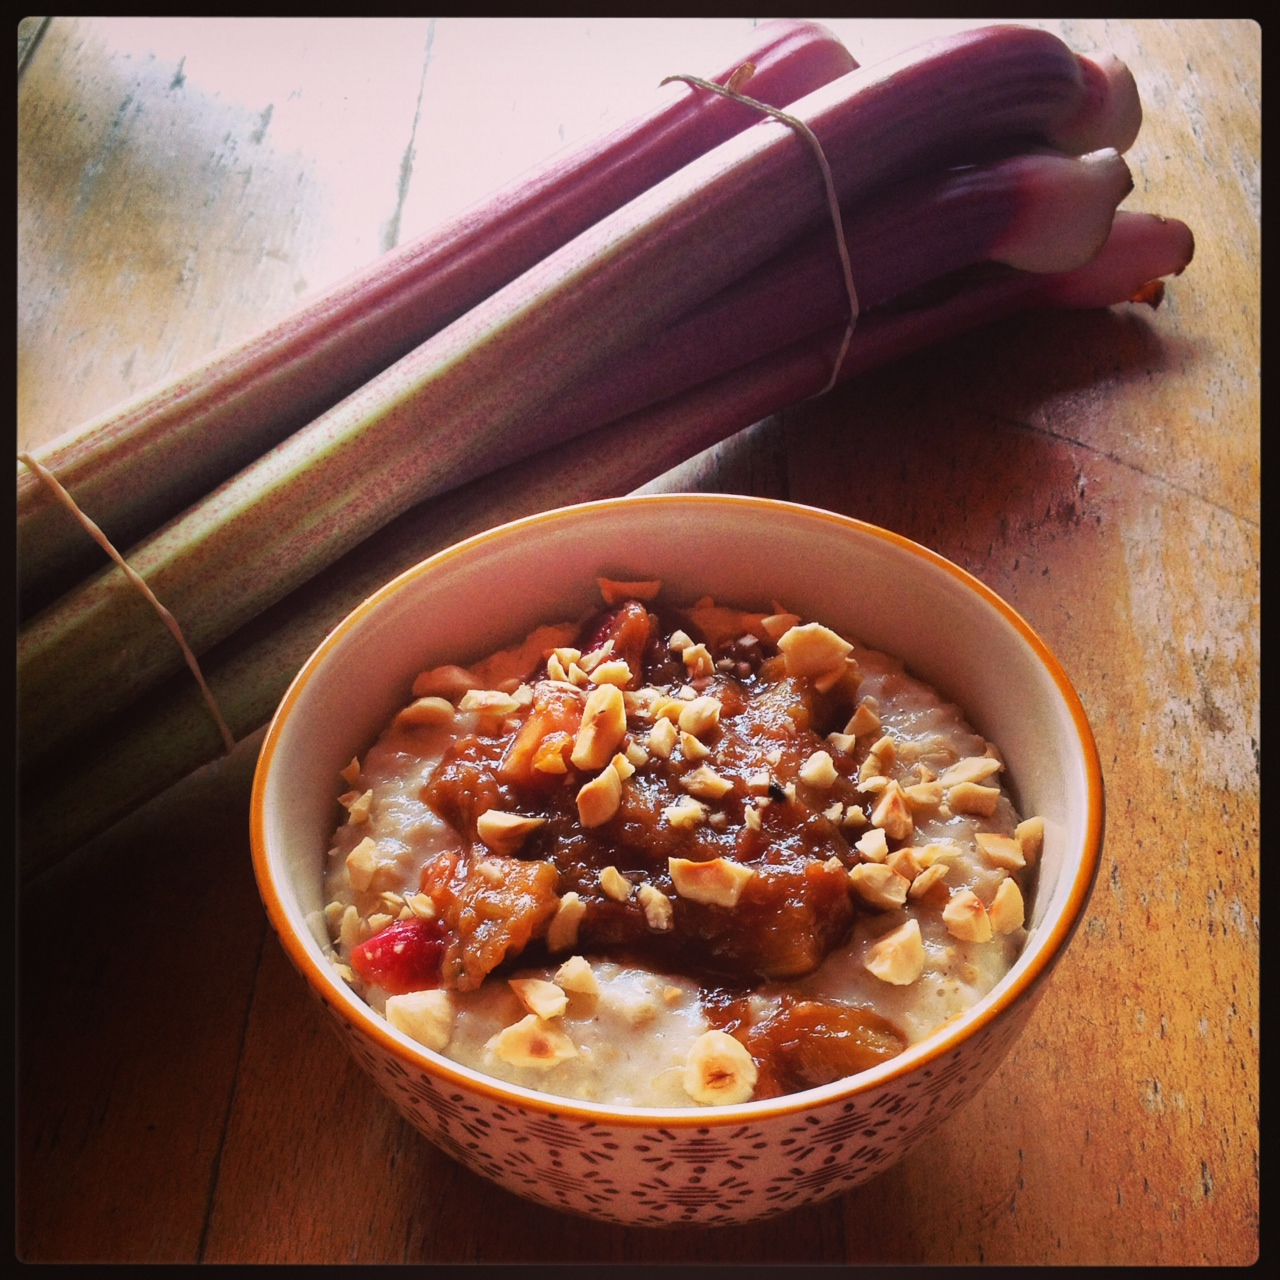 Rhubarb compote, and a new Wild Oats market venue!